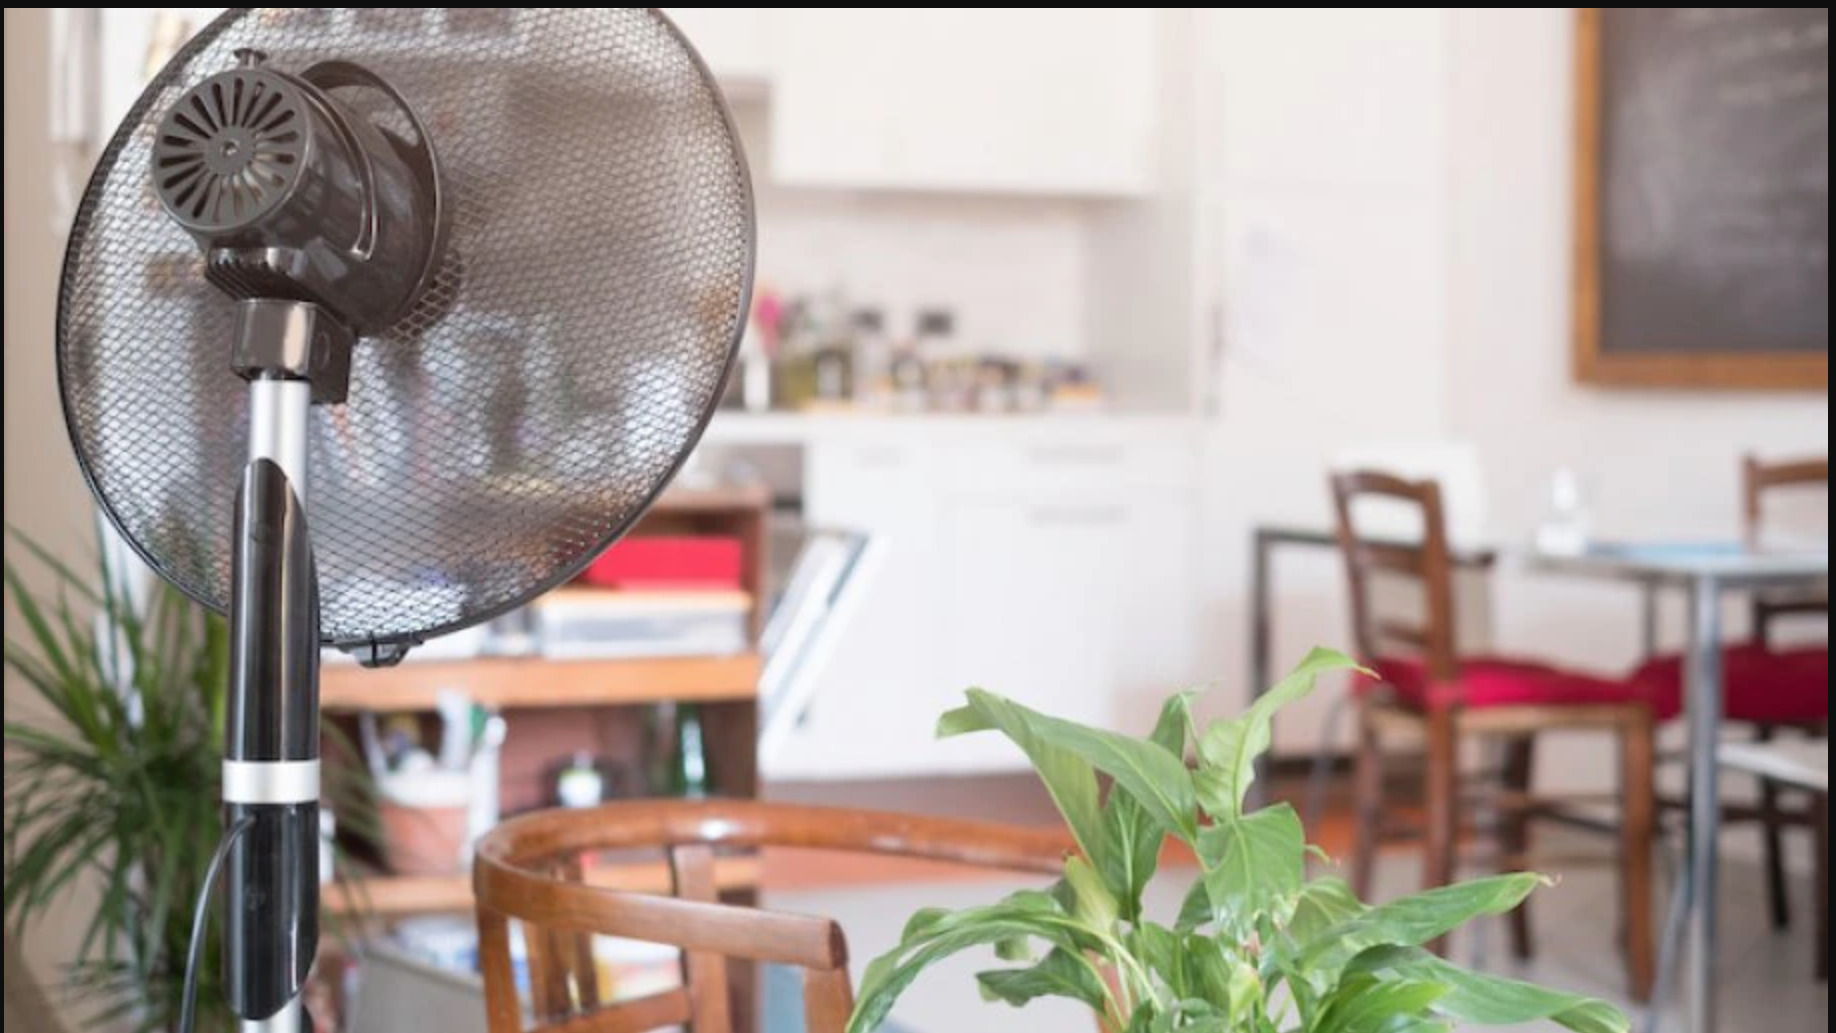 What Are The Facts That You Have To Be Careful About While Hanging an Oscillating Fan In Grow Tent?